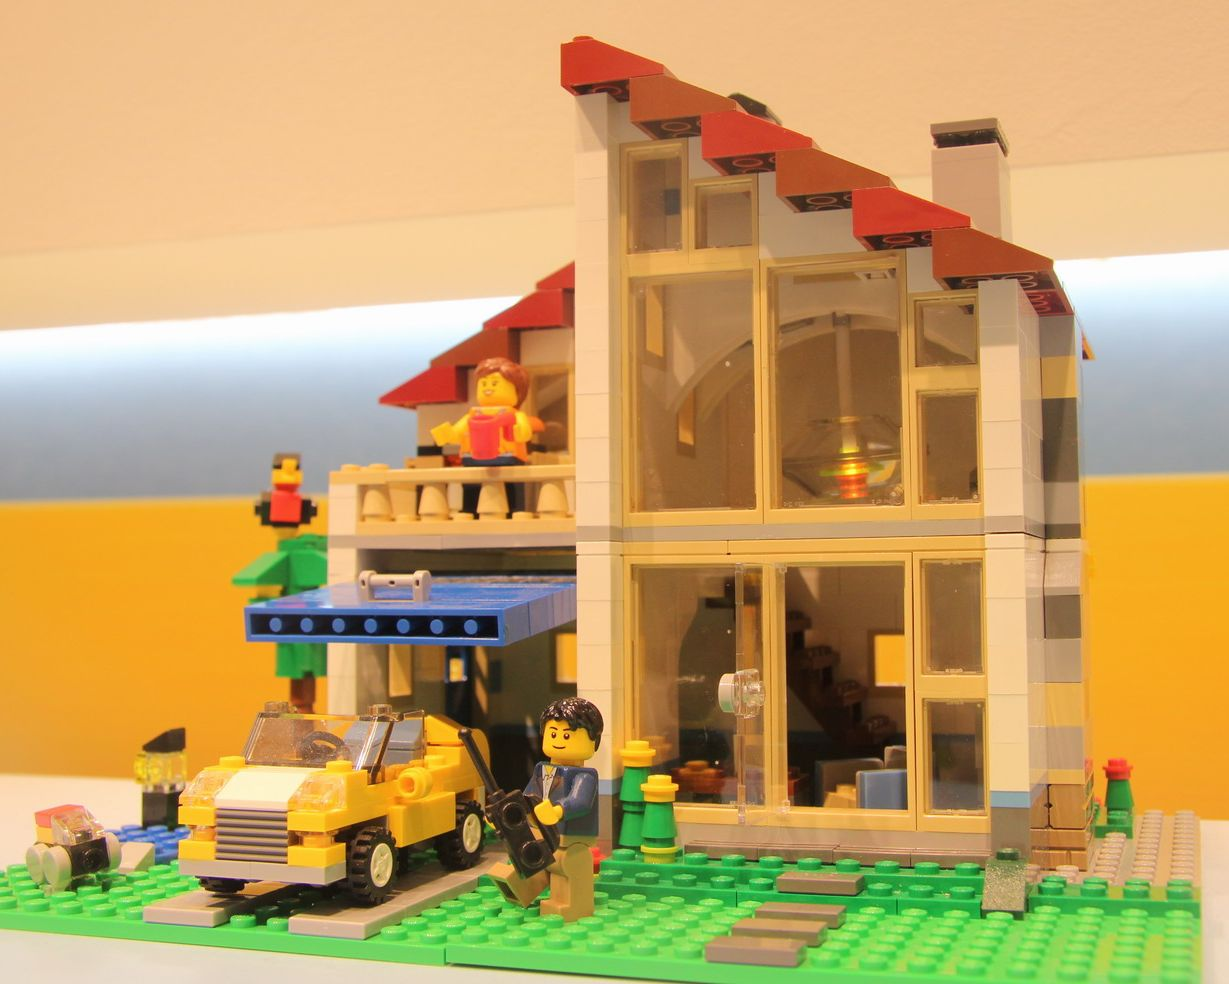 Lego 31012 Family House I Brick City